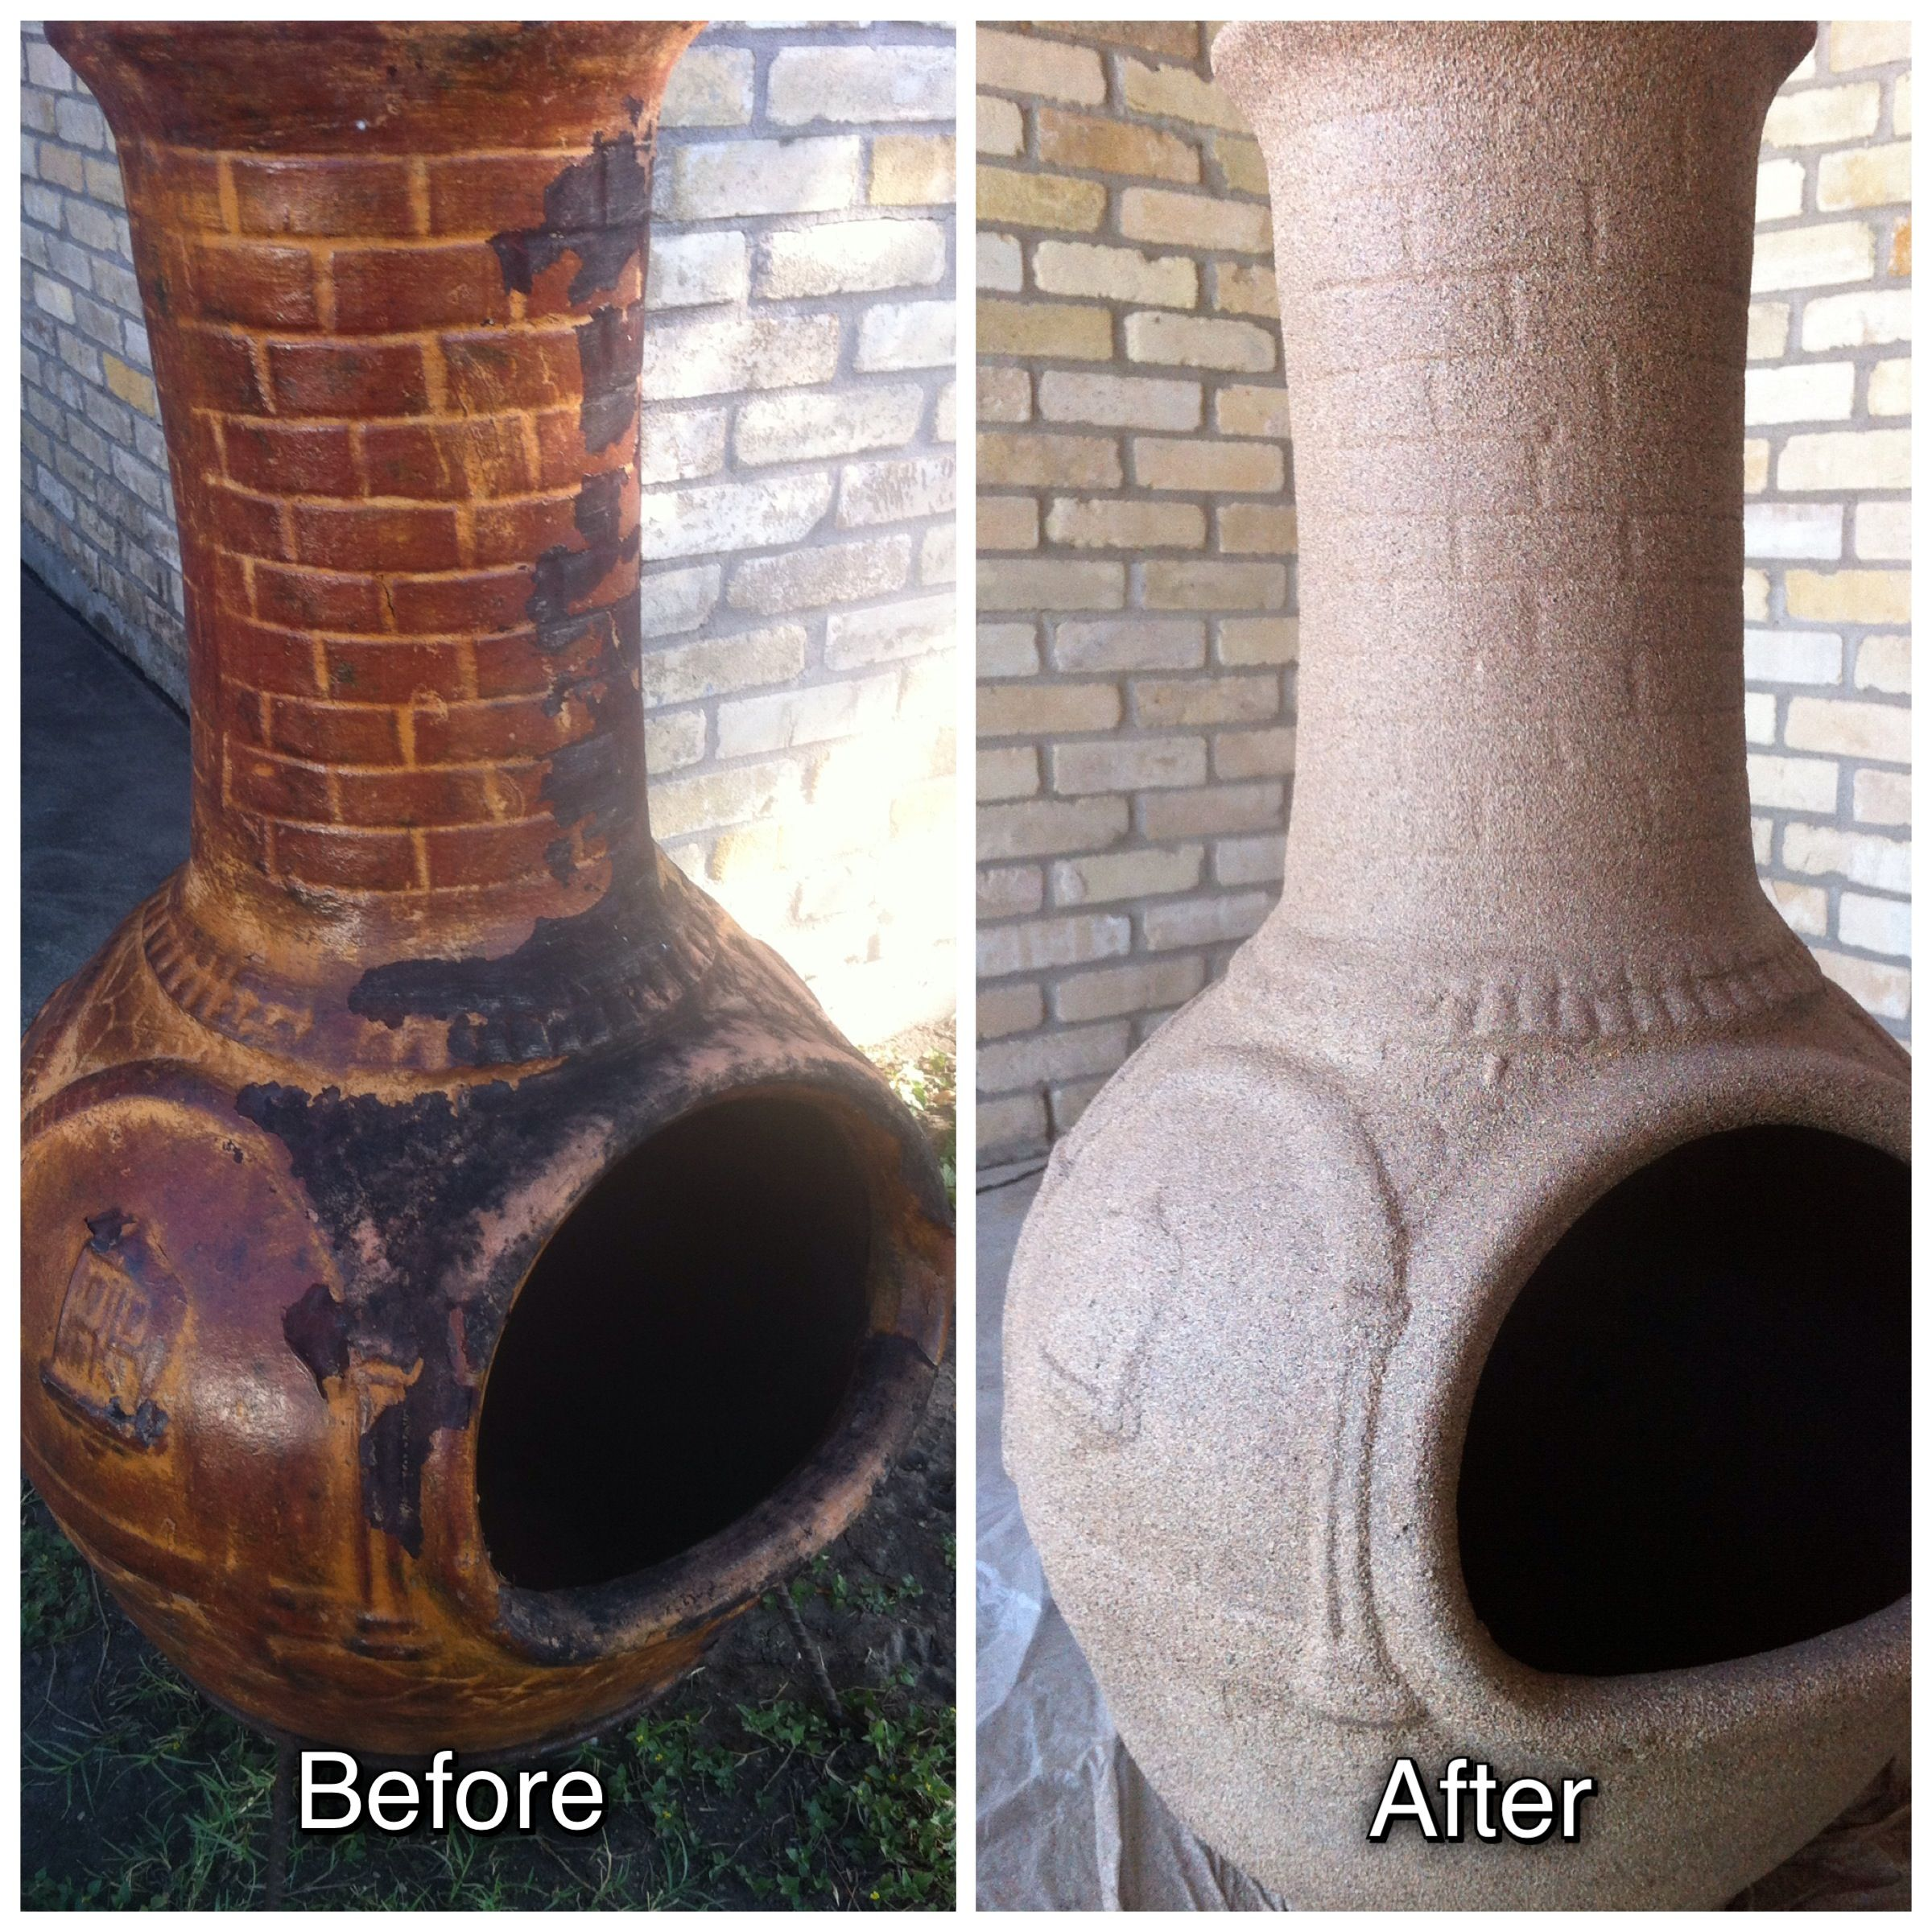 Painted My Ugly Chiminea Using Rust Oleum Stone Textured Finish Spray  Paint. Used To